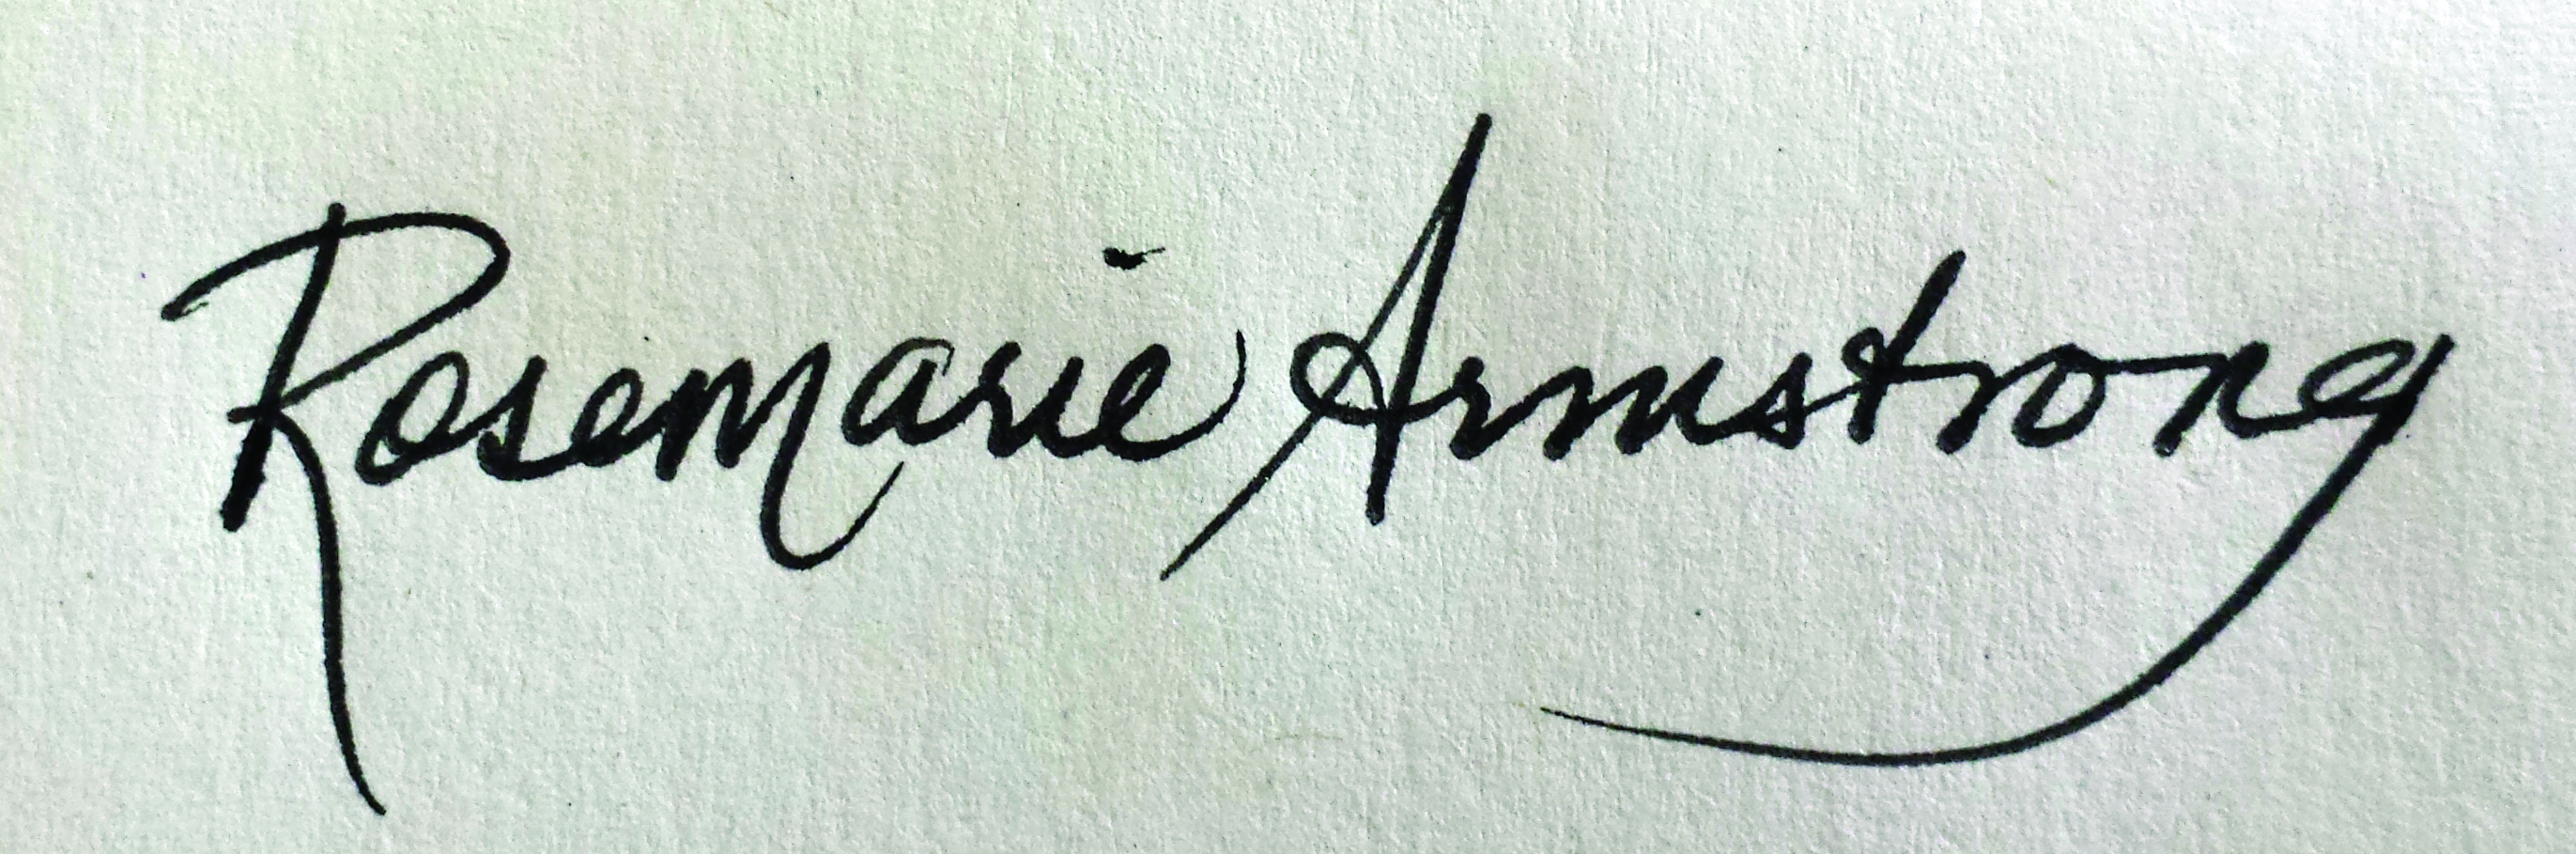 Rosemarie Armstrong Signature